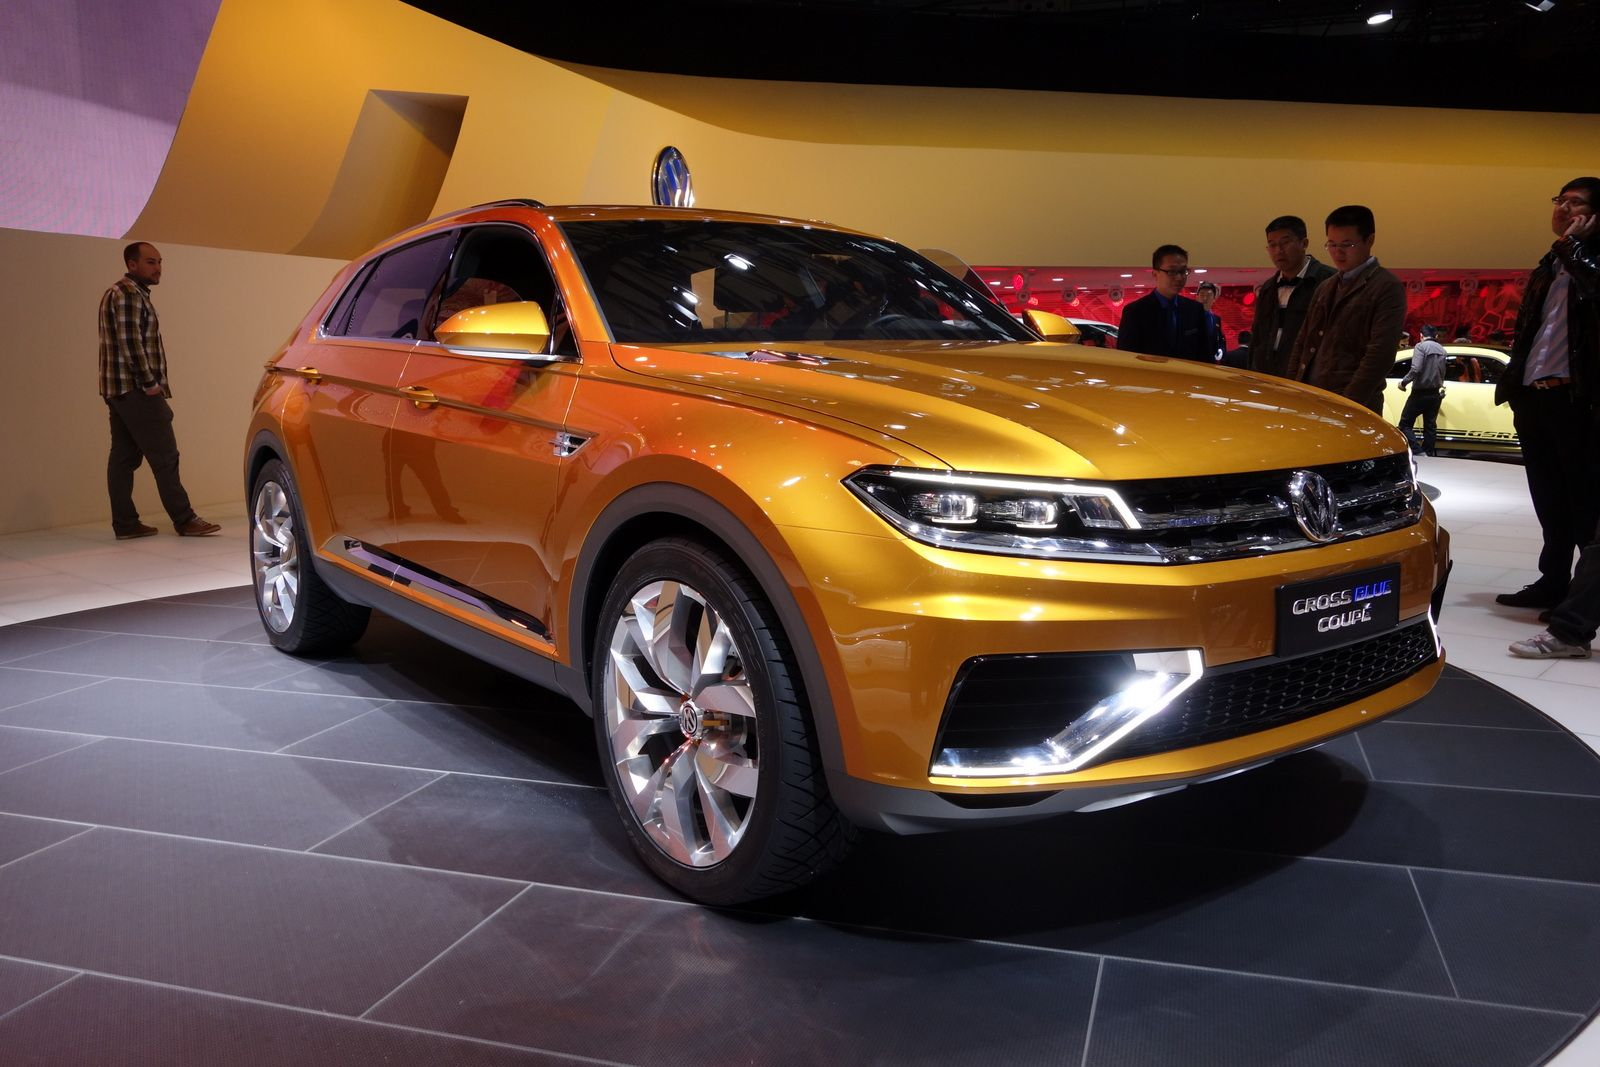 Volkswagen bold hybrid concept of suv the crossblue coup concept is premiered in the